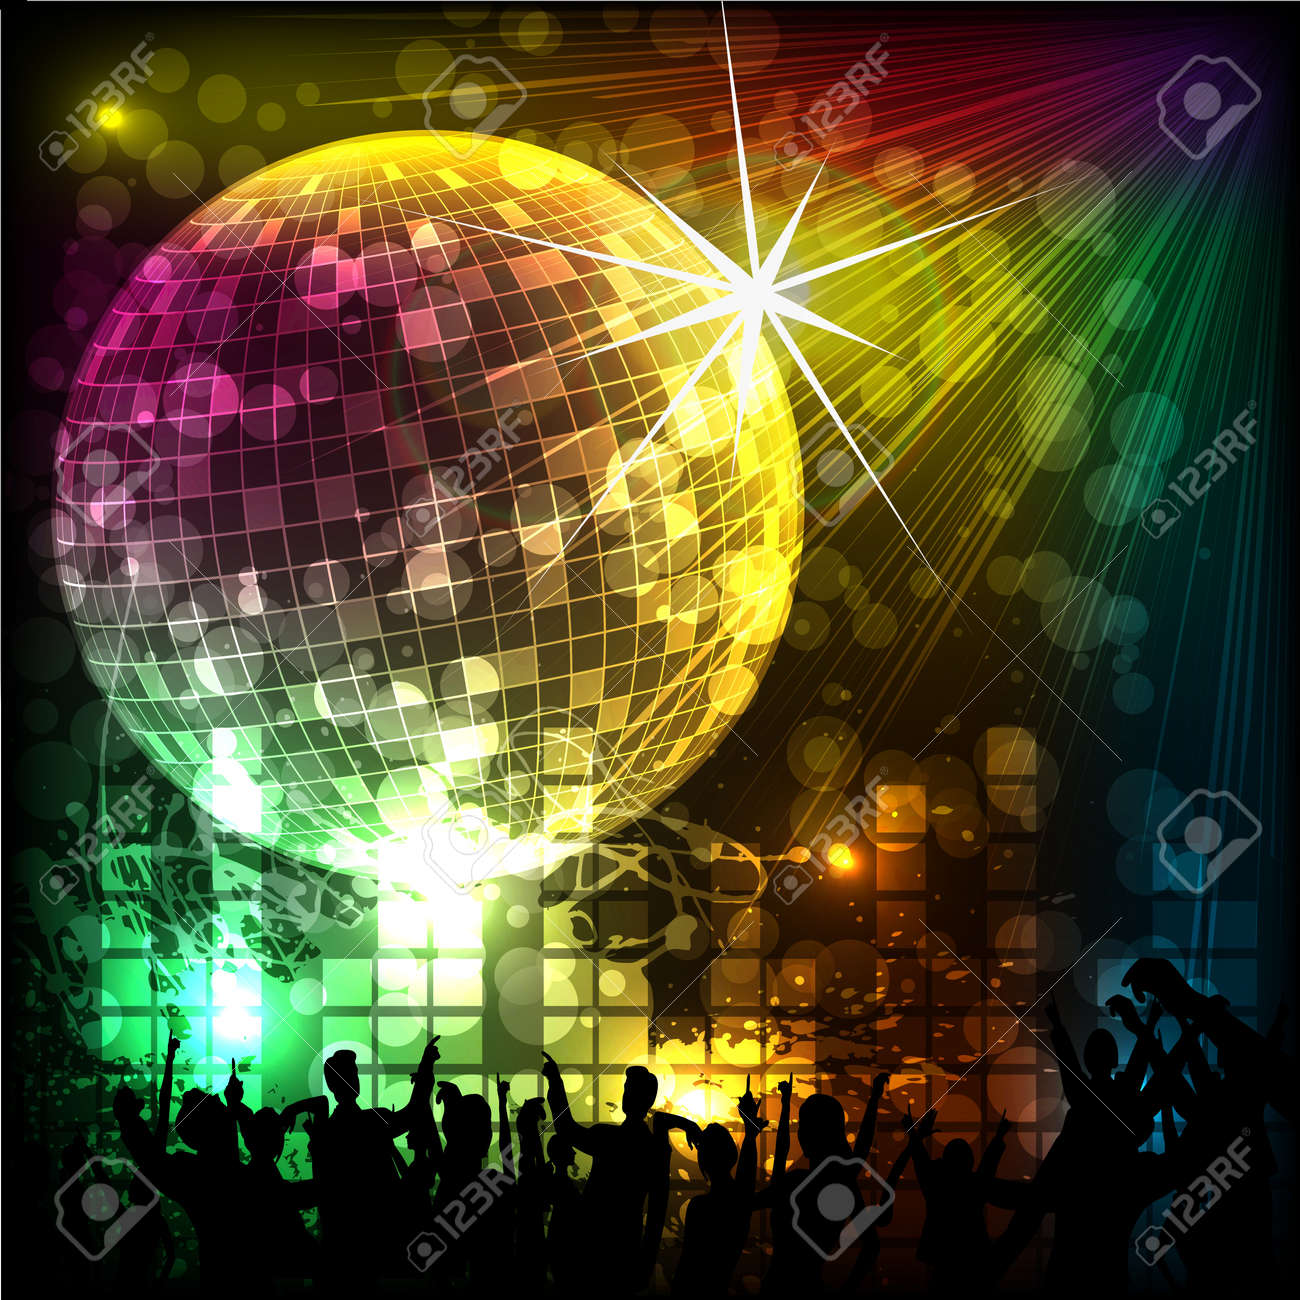 Crowd in Musical Background Stock Vector - 19114088